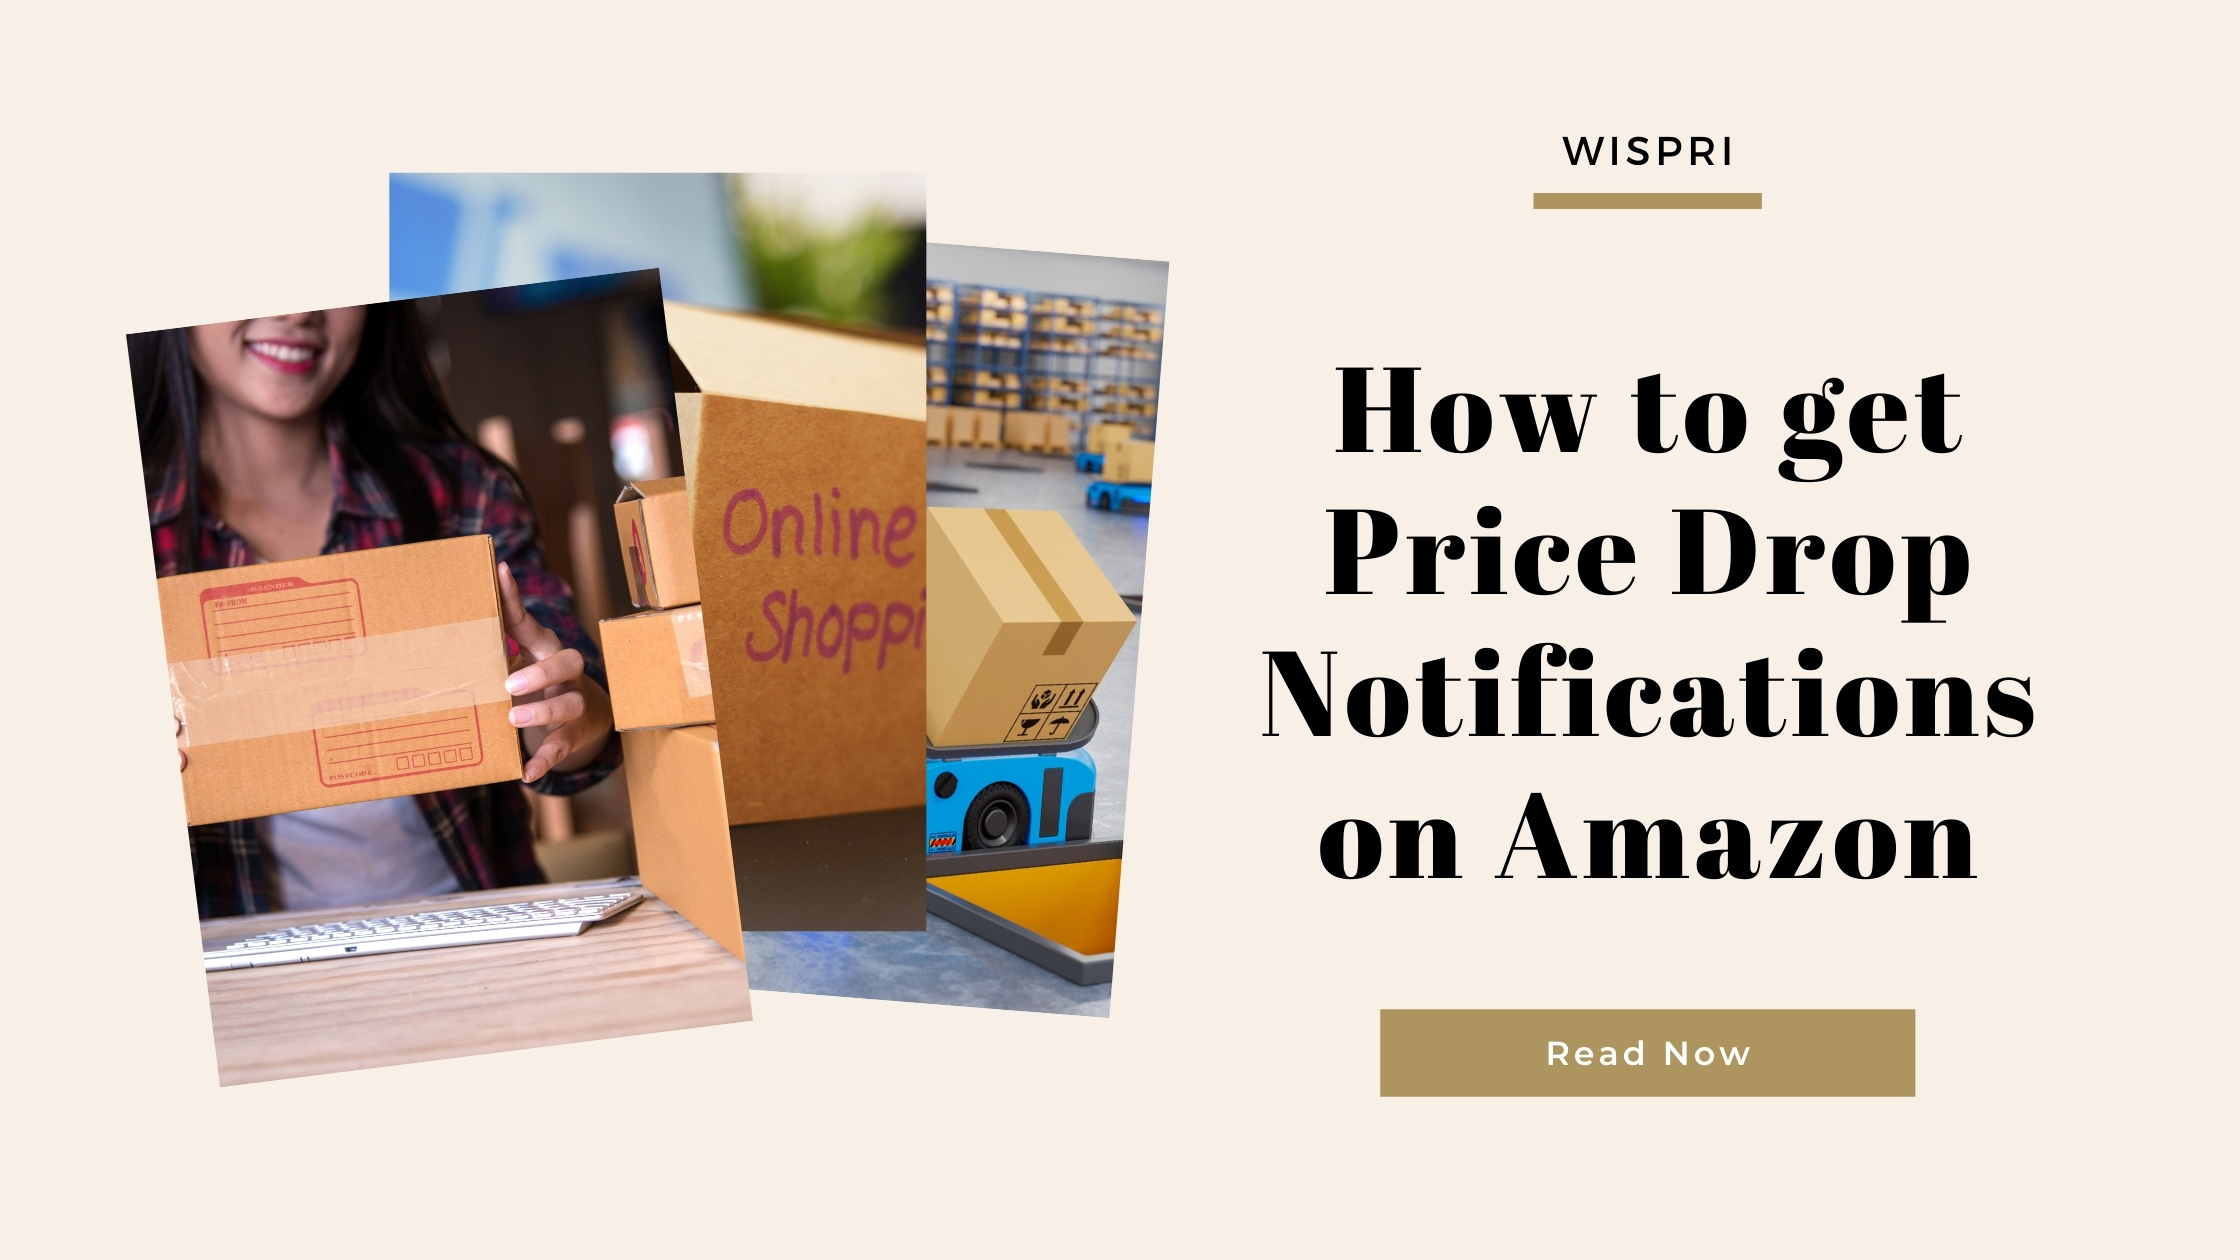 How to get price drop notifications on Amazon